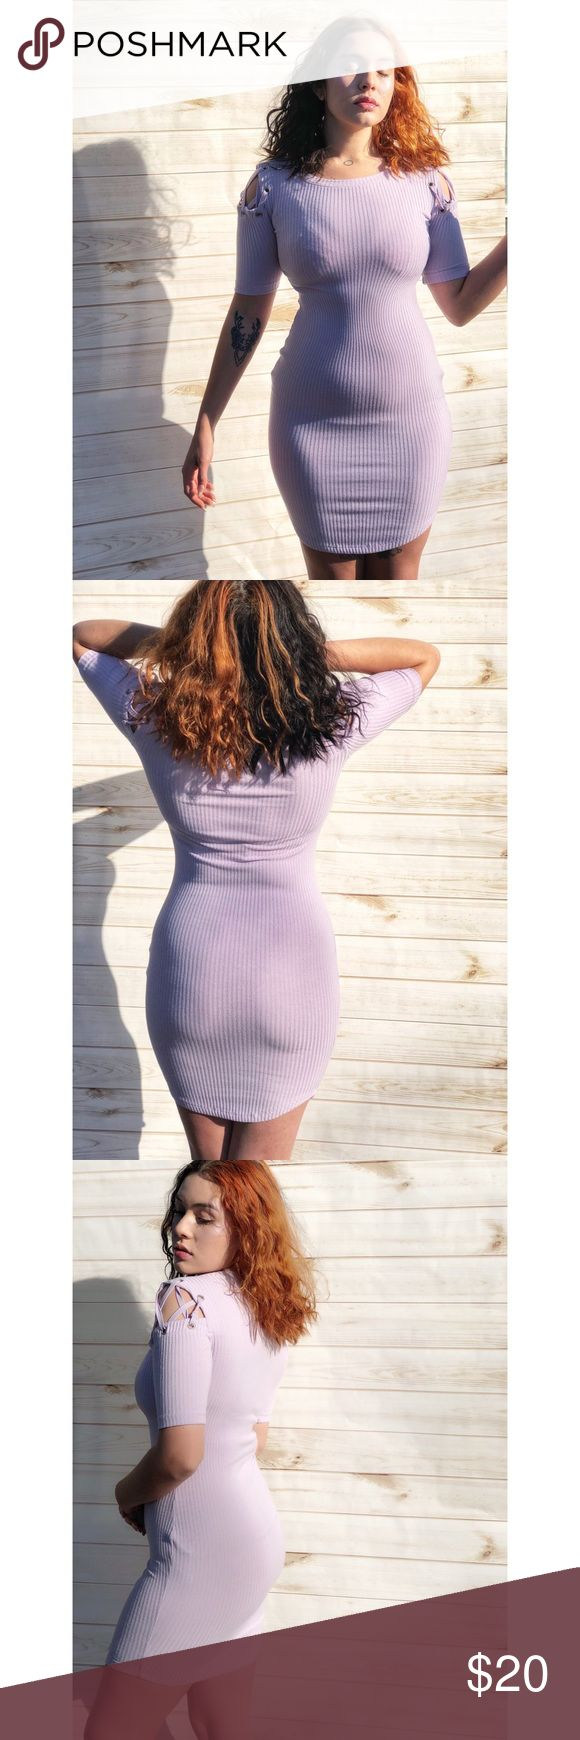 NWOT Lace shoulder fitted lavender dress *Size: Small* *Hand wash cycle cold* -Lavender pleated exterior -Fitted stretch fabric -Midi length -Scoop neck -Shoulder cutouts with lace design -Body accentuating -Worn only for photos -Pairs well with heels/boots/sneakers Forever 21 Dresses Midi